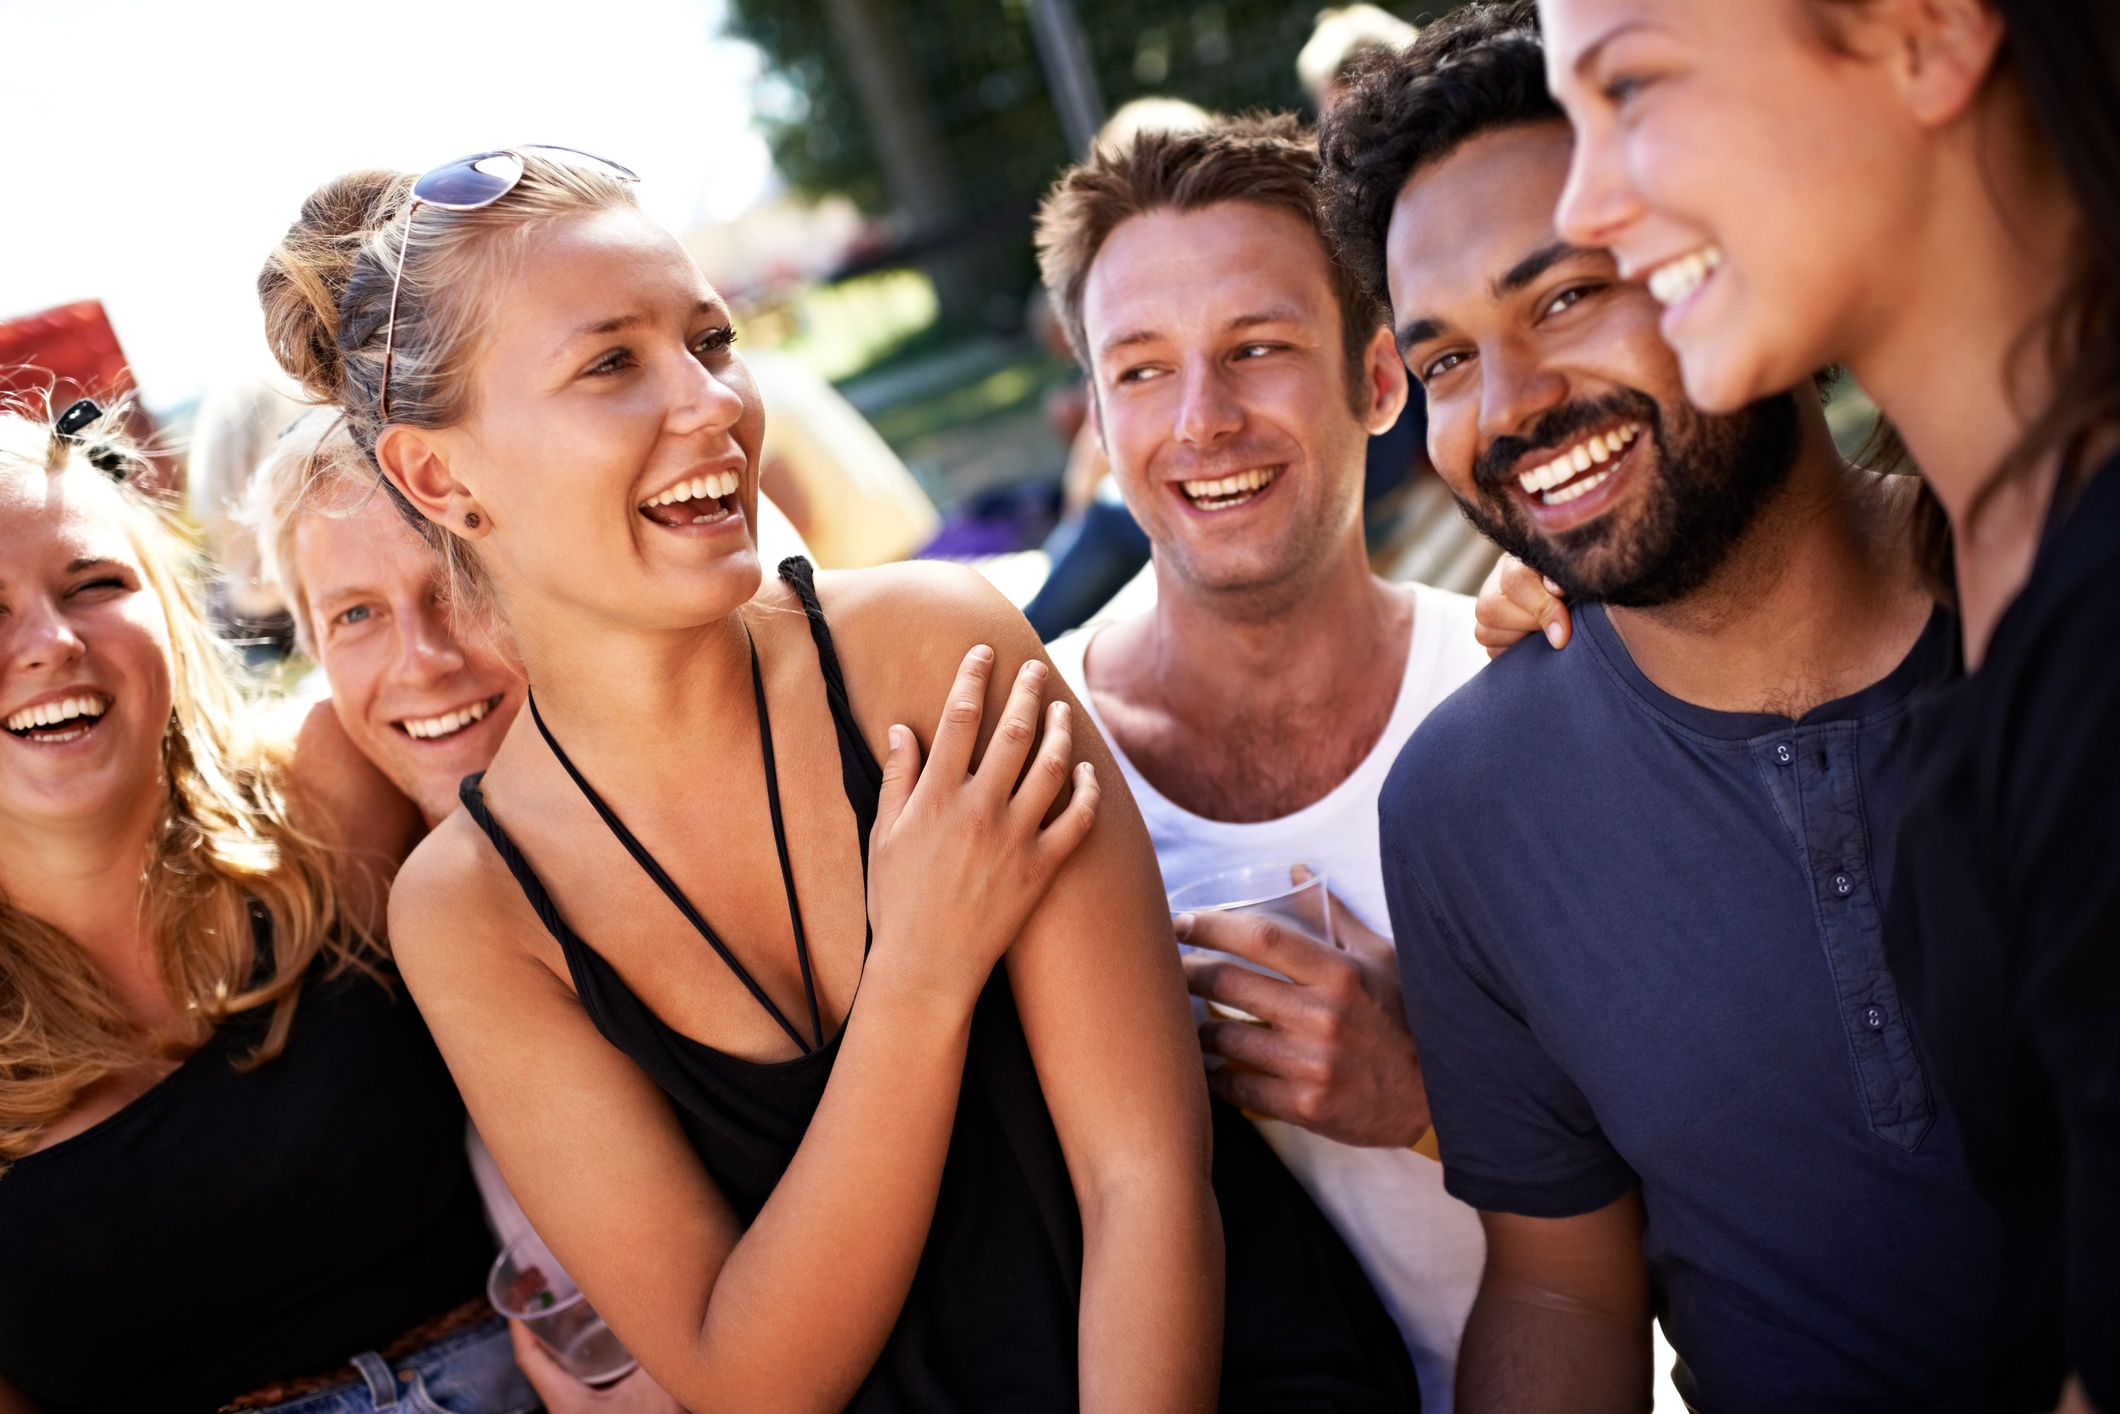 Laughter and humor have been shown to have positive effects on people, and can help boost your public image..jpg